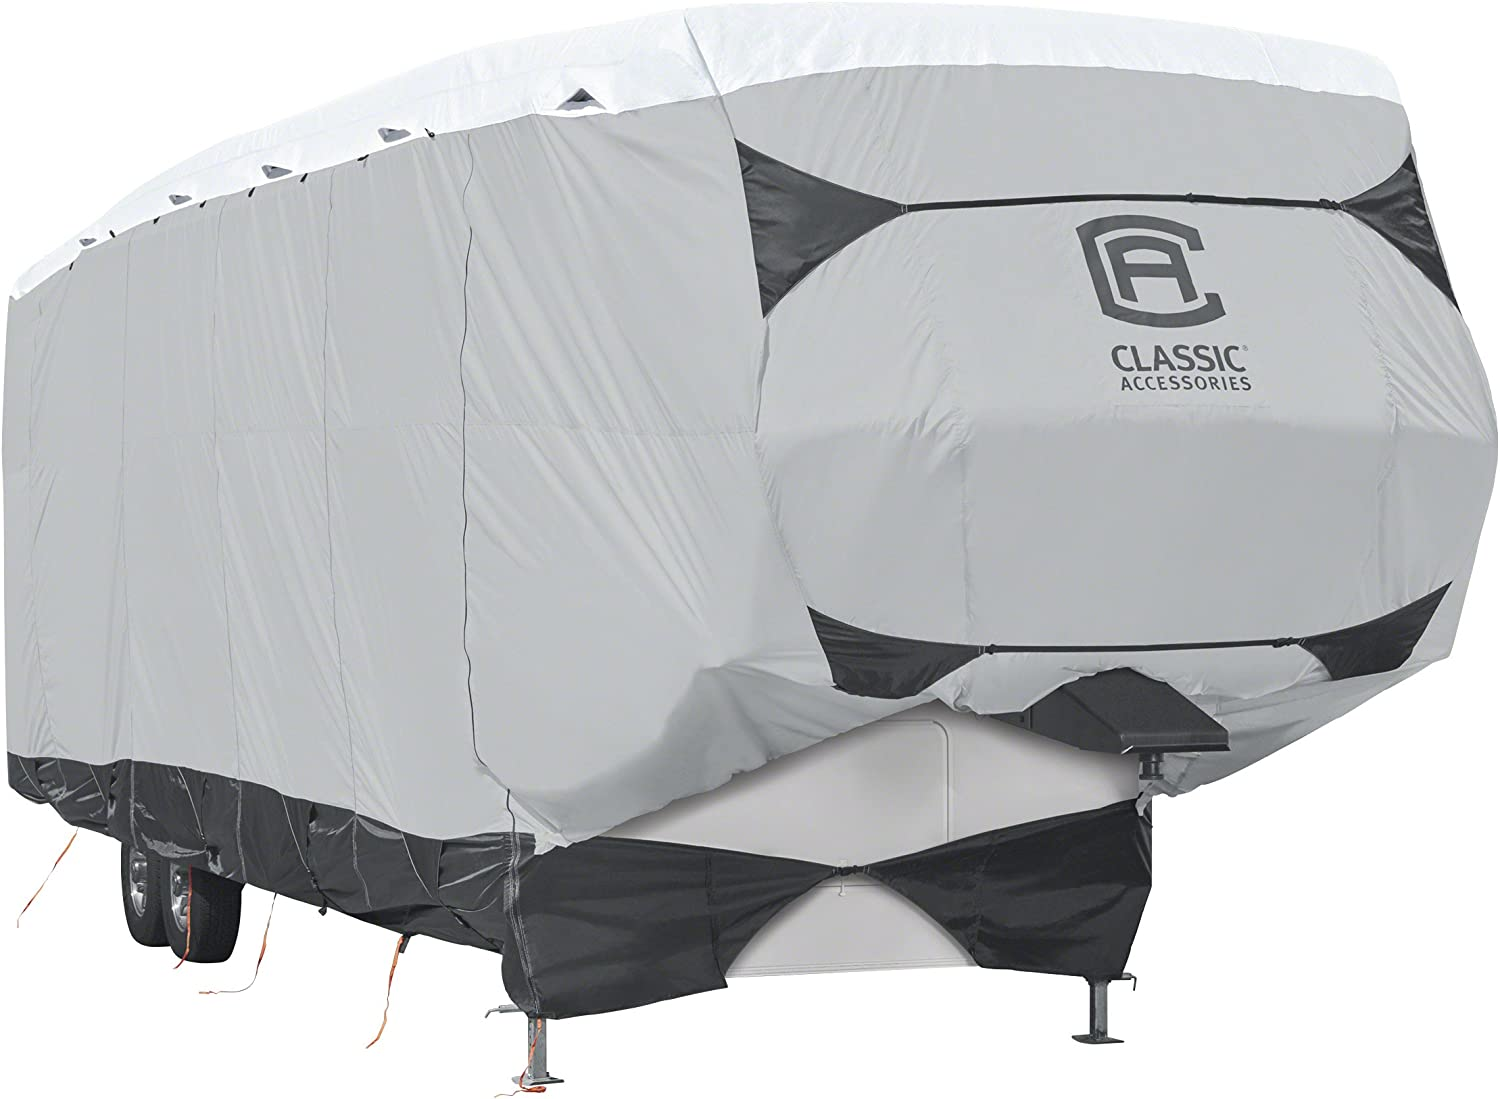 Classic Accessories Over Drive SkyShield Deluxe 5th Wheel Trailer Cover, Fits 41' - 44' Trailers - Water Repellent RV Cover (80-367-102001-EX)